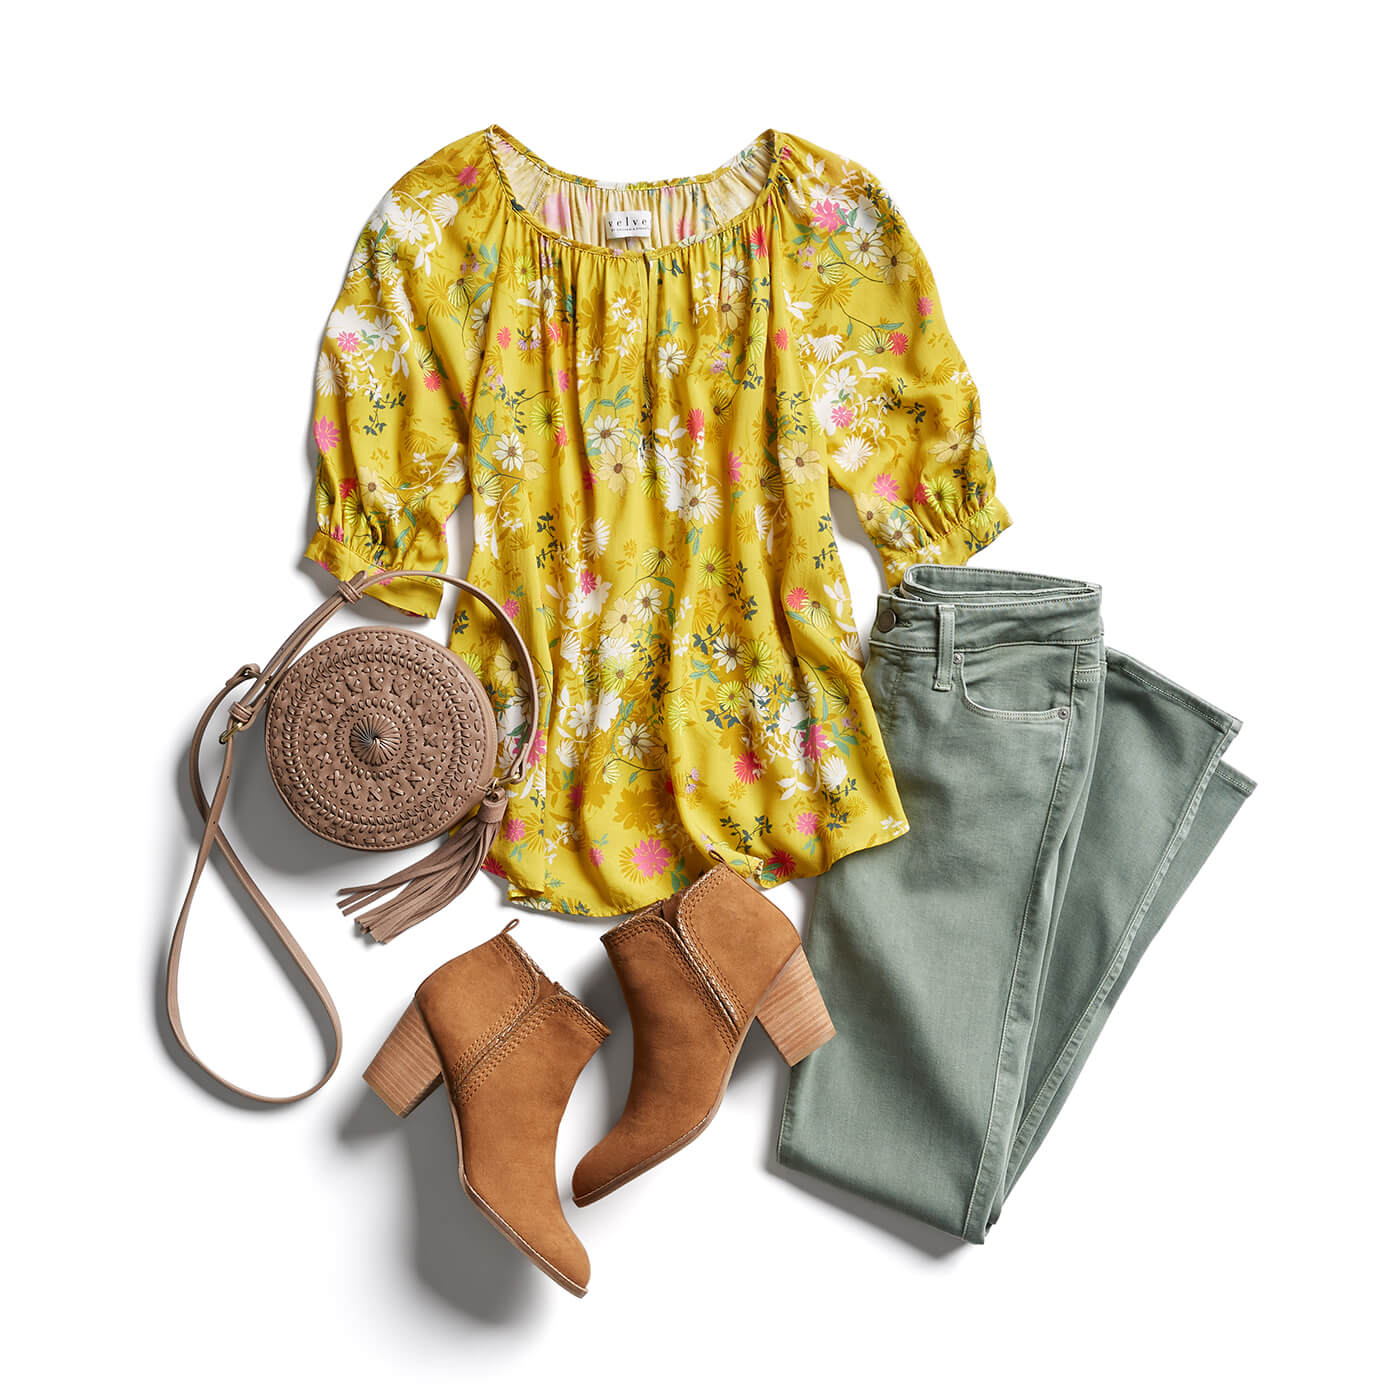 02b91dda8 What are the best tops for an apple shape? | Stitch Fix Blog ...